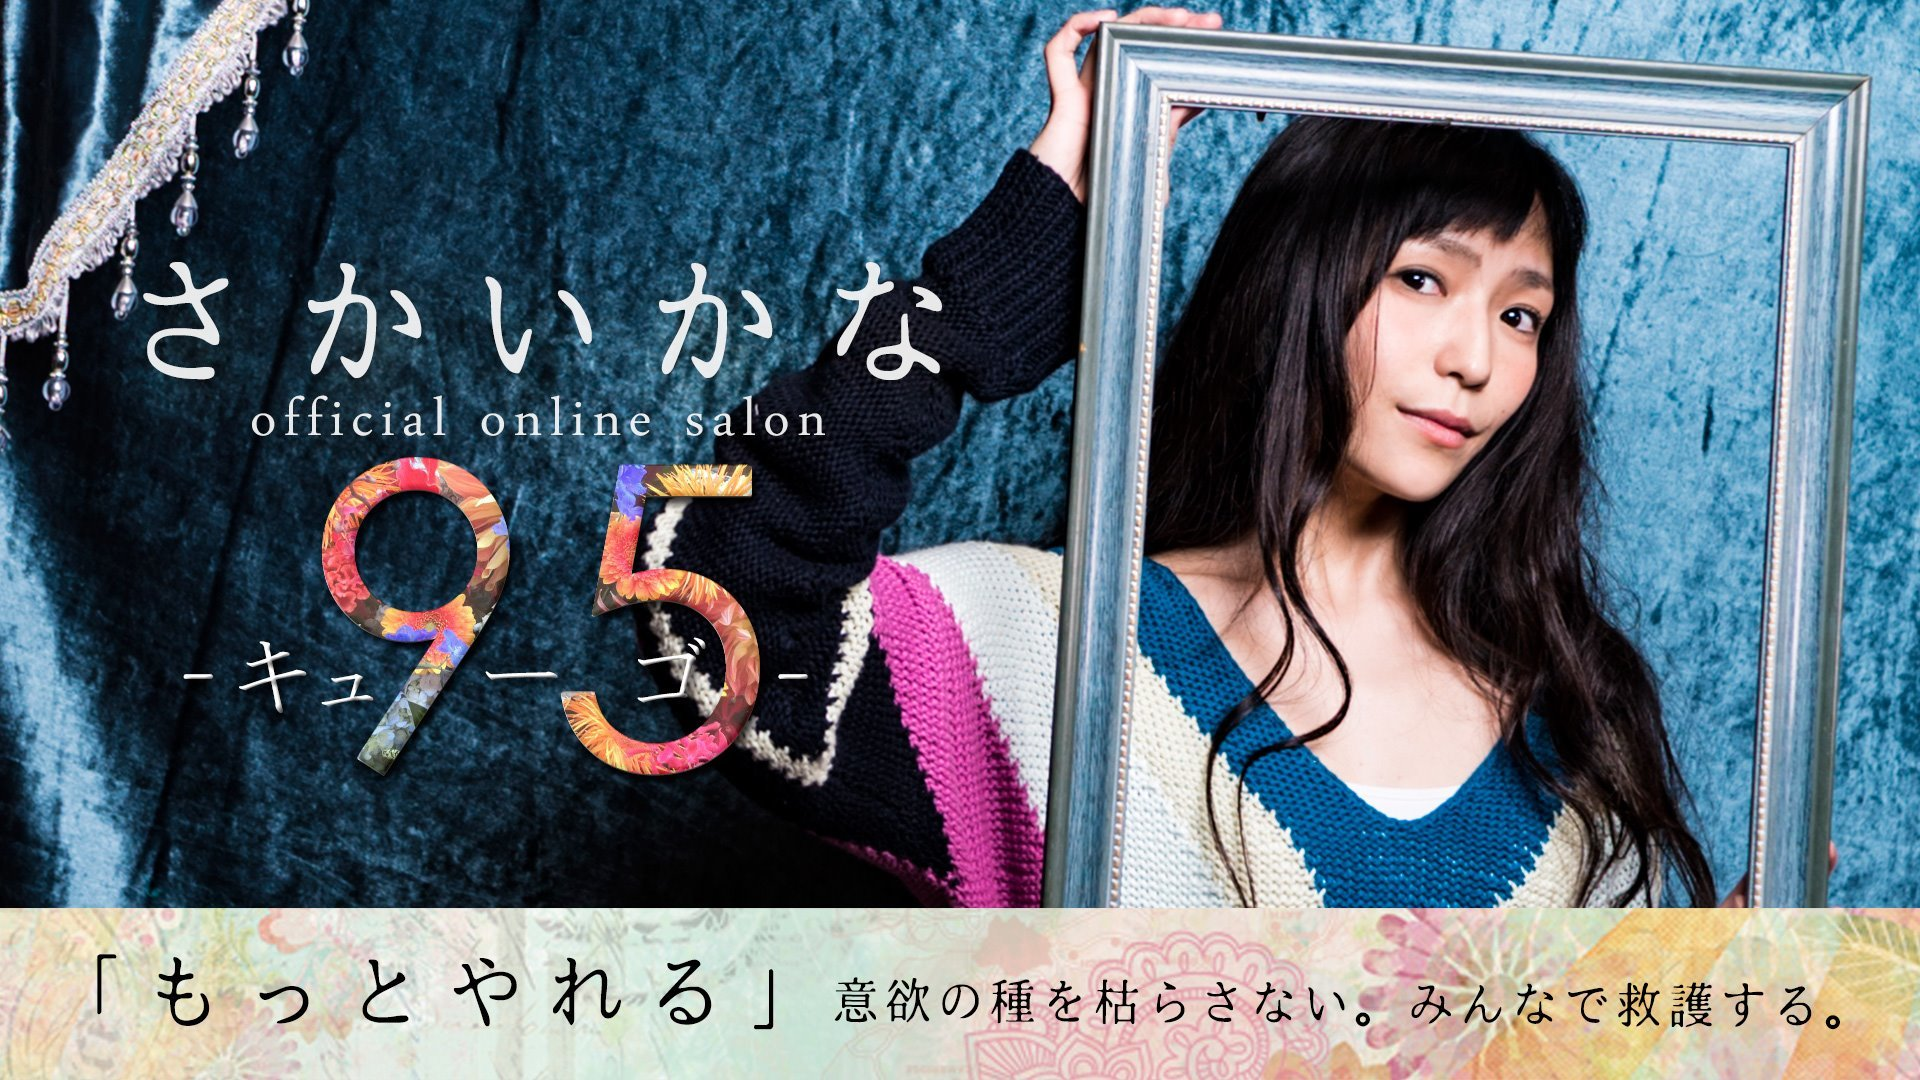 さかいかな official online salon -95-